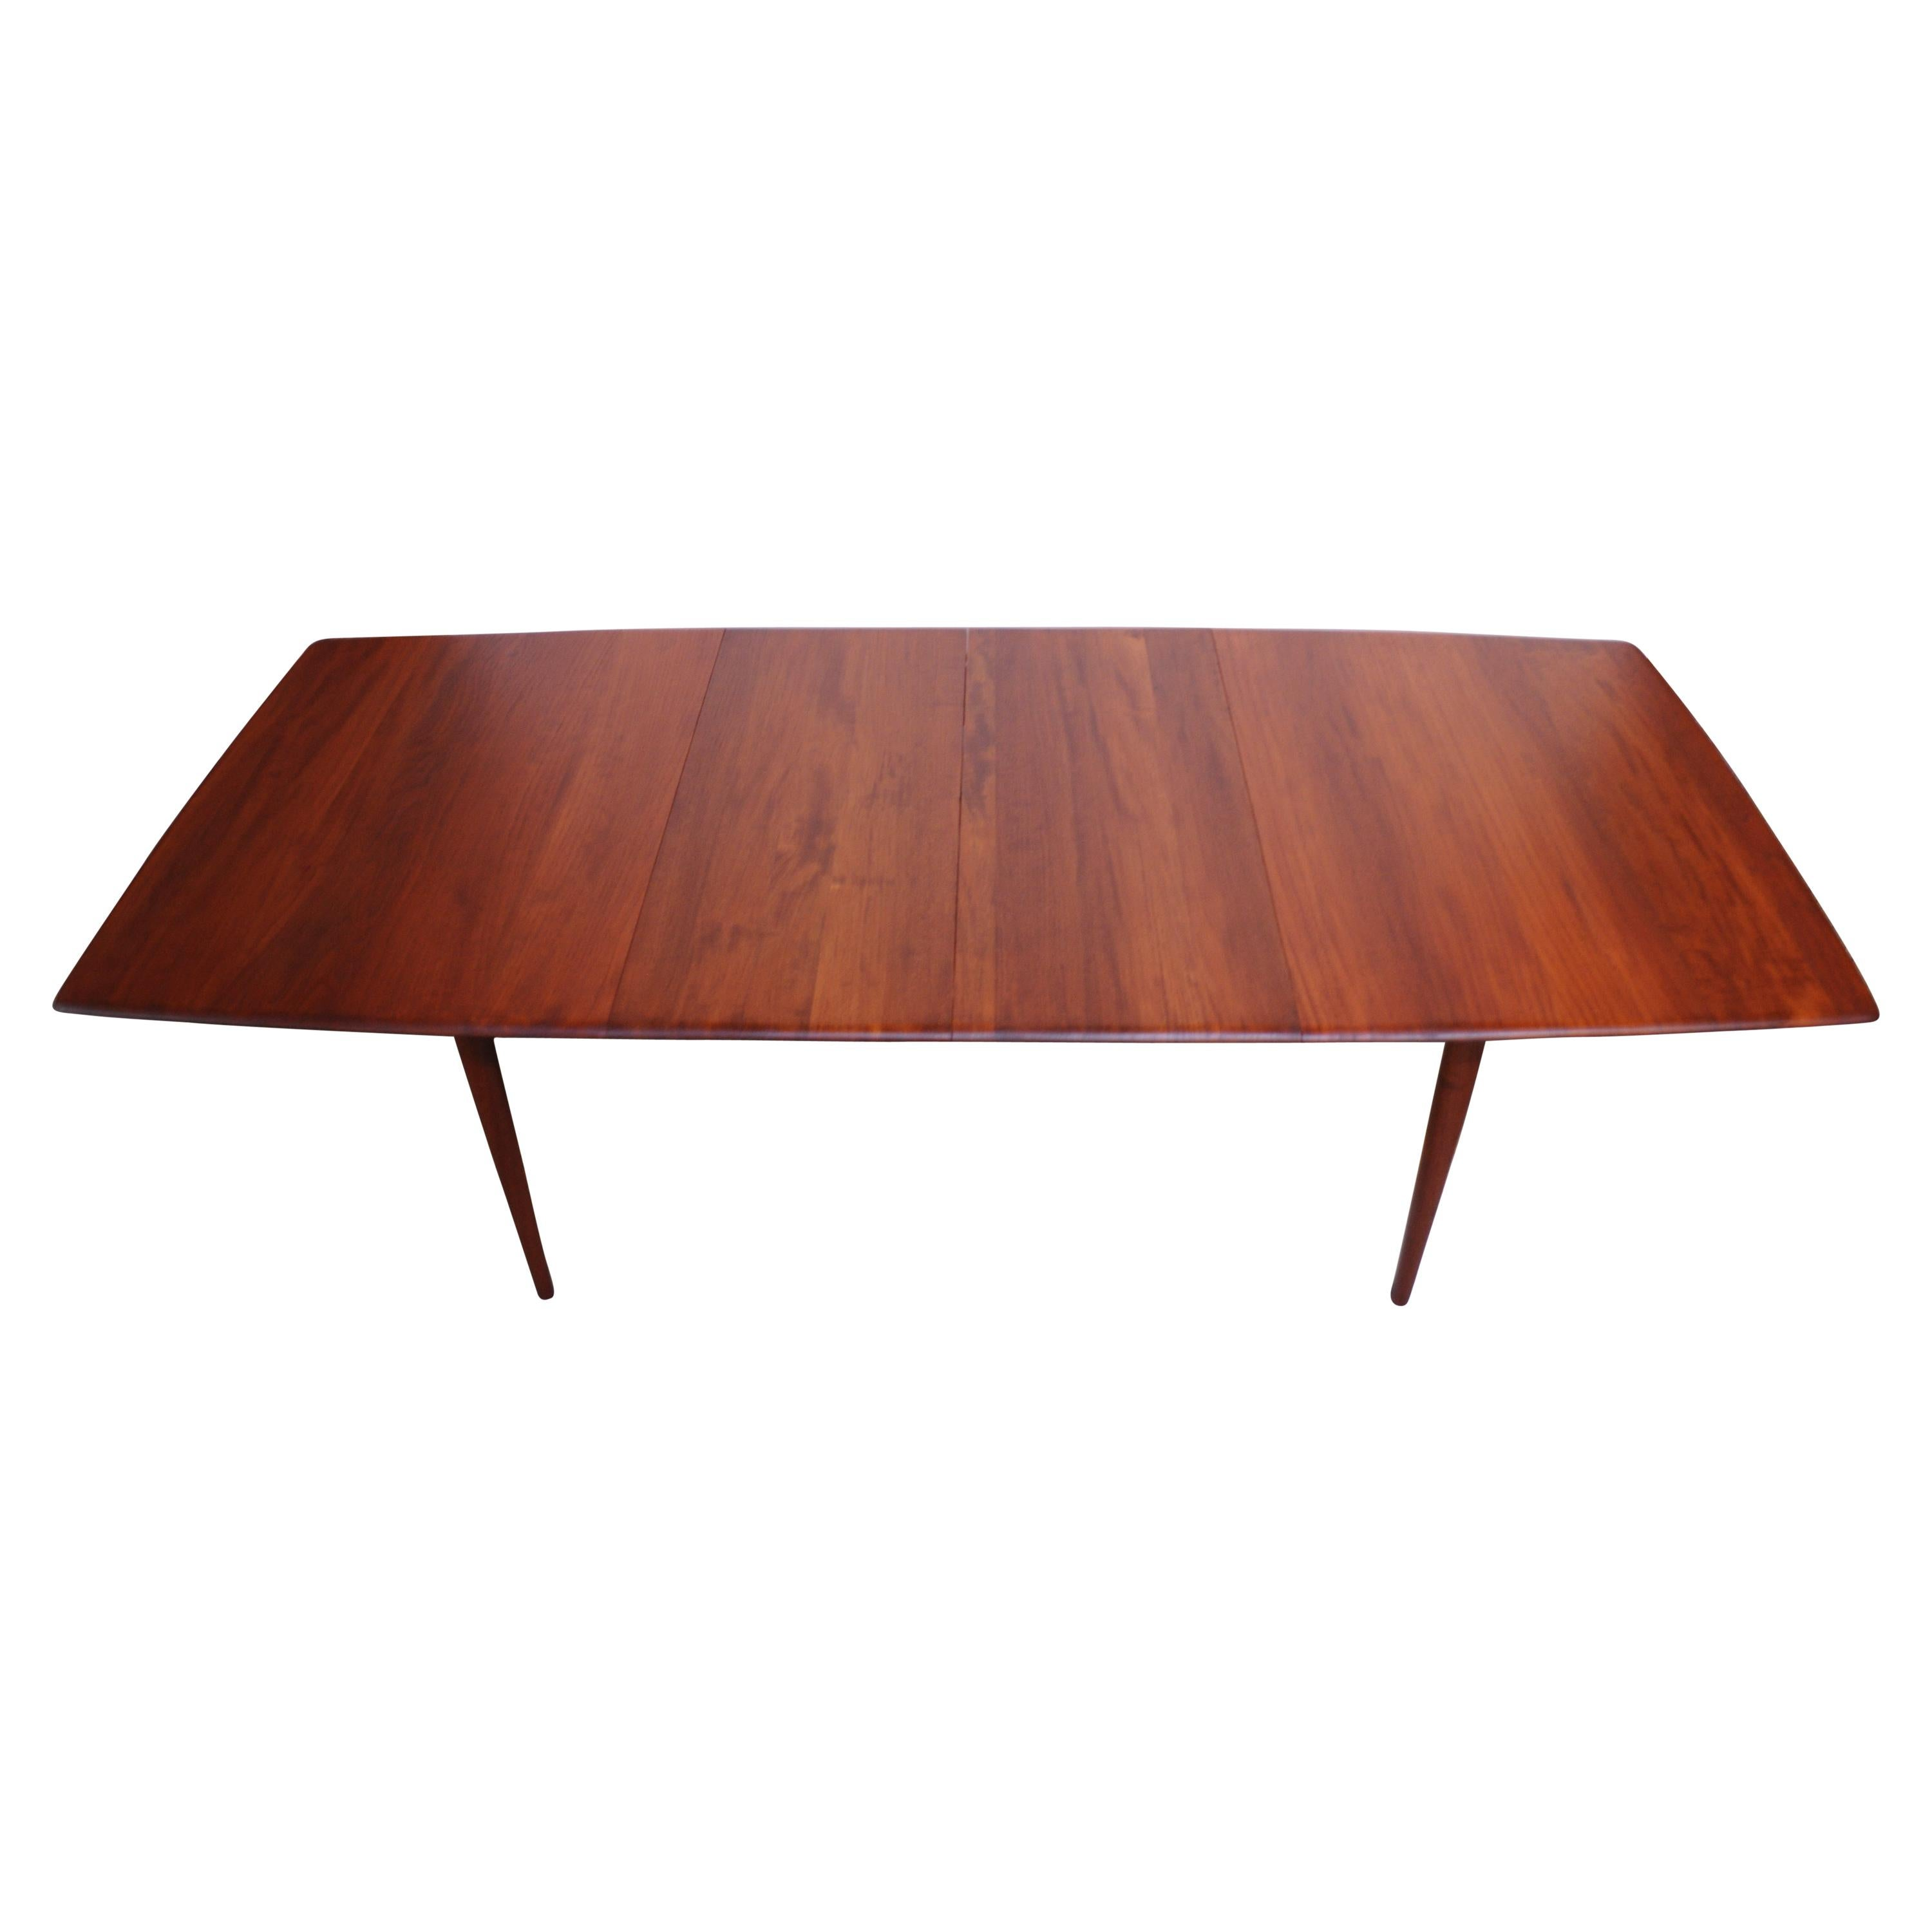 Solid Teak Extendable Dining Table by Johannes Aasbjerg